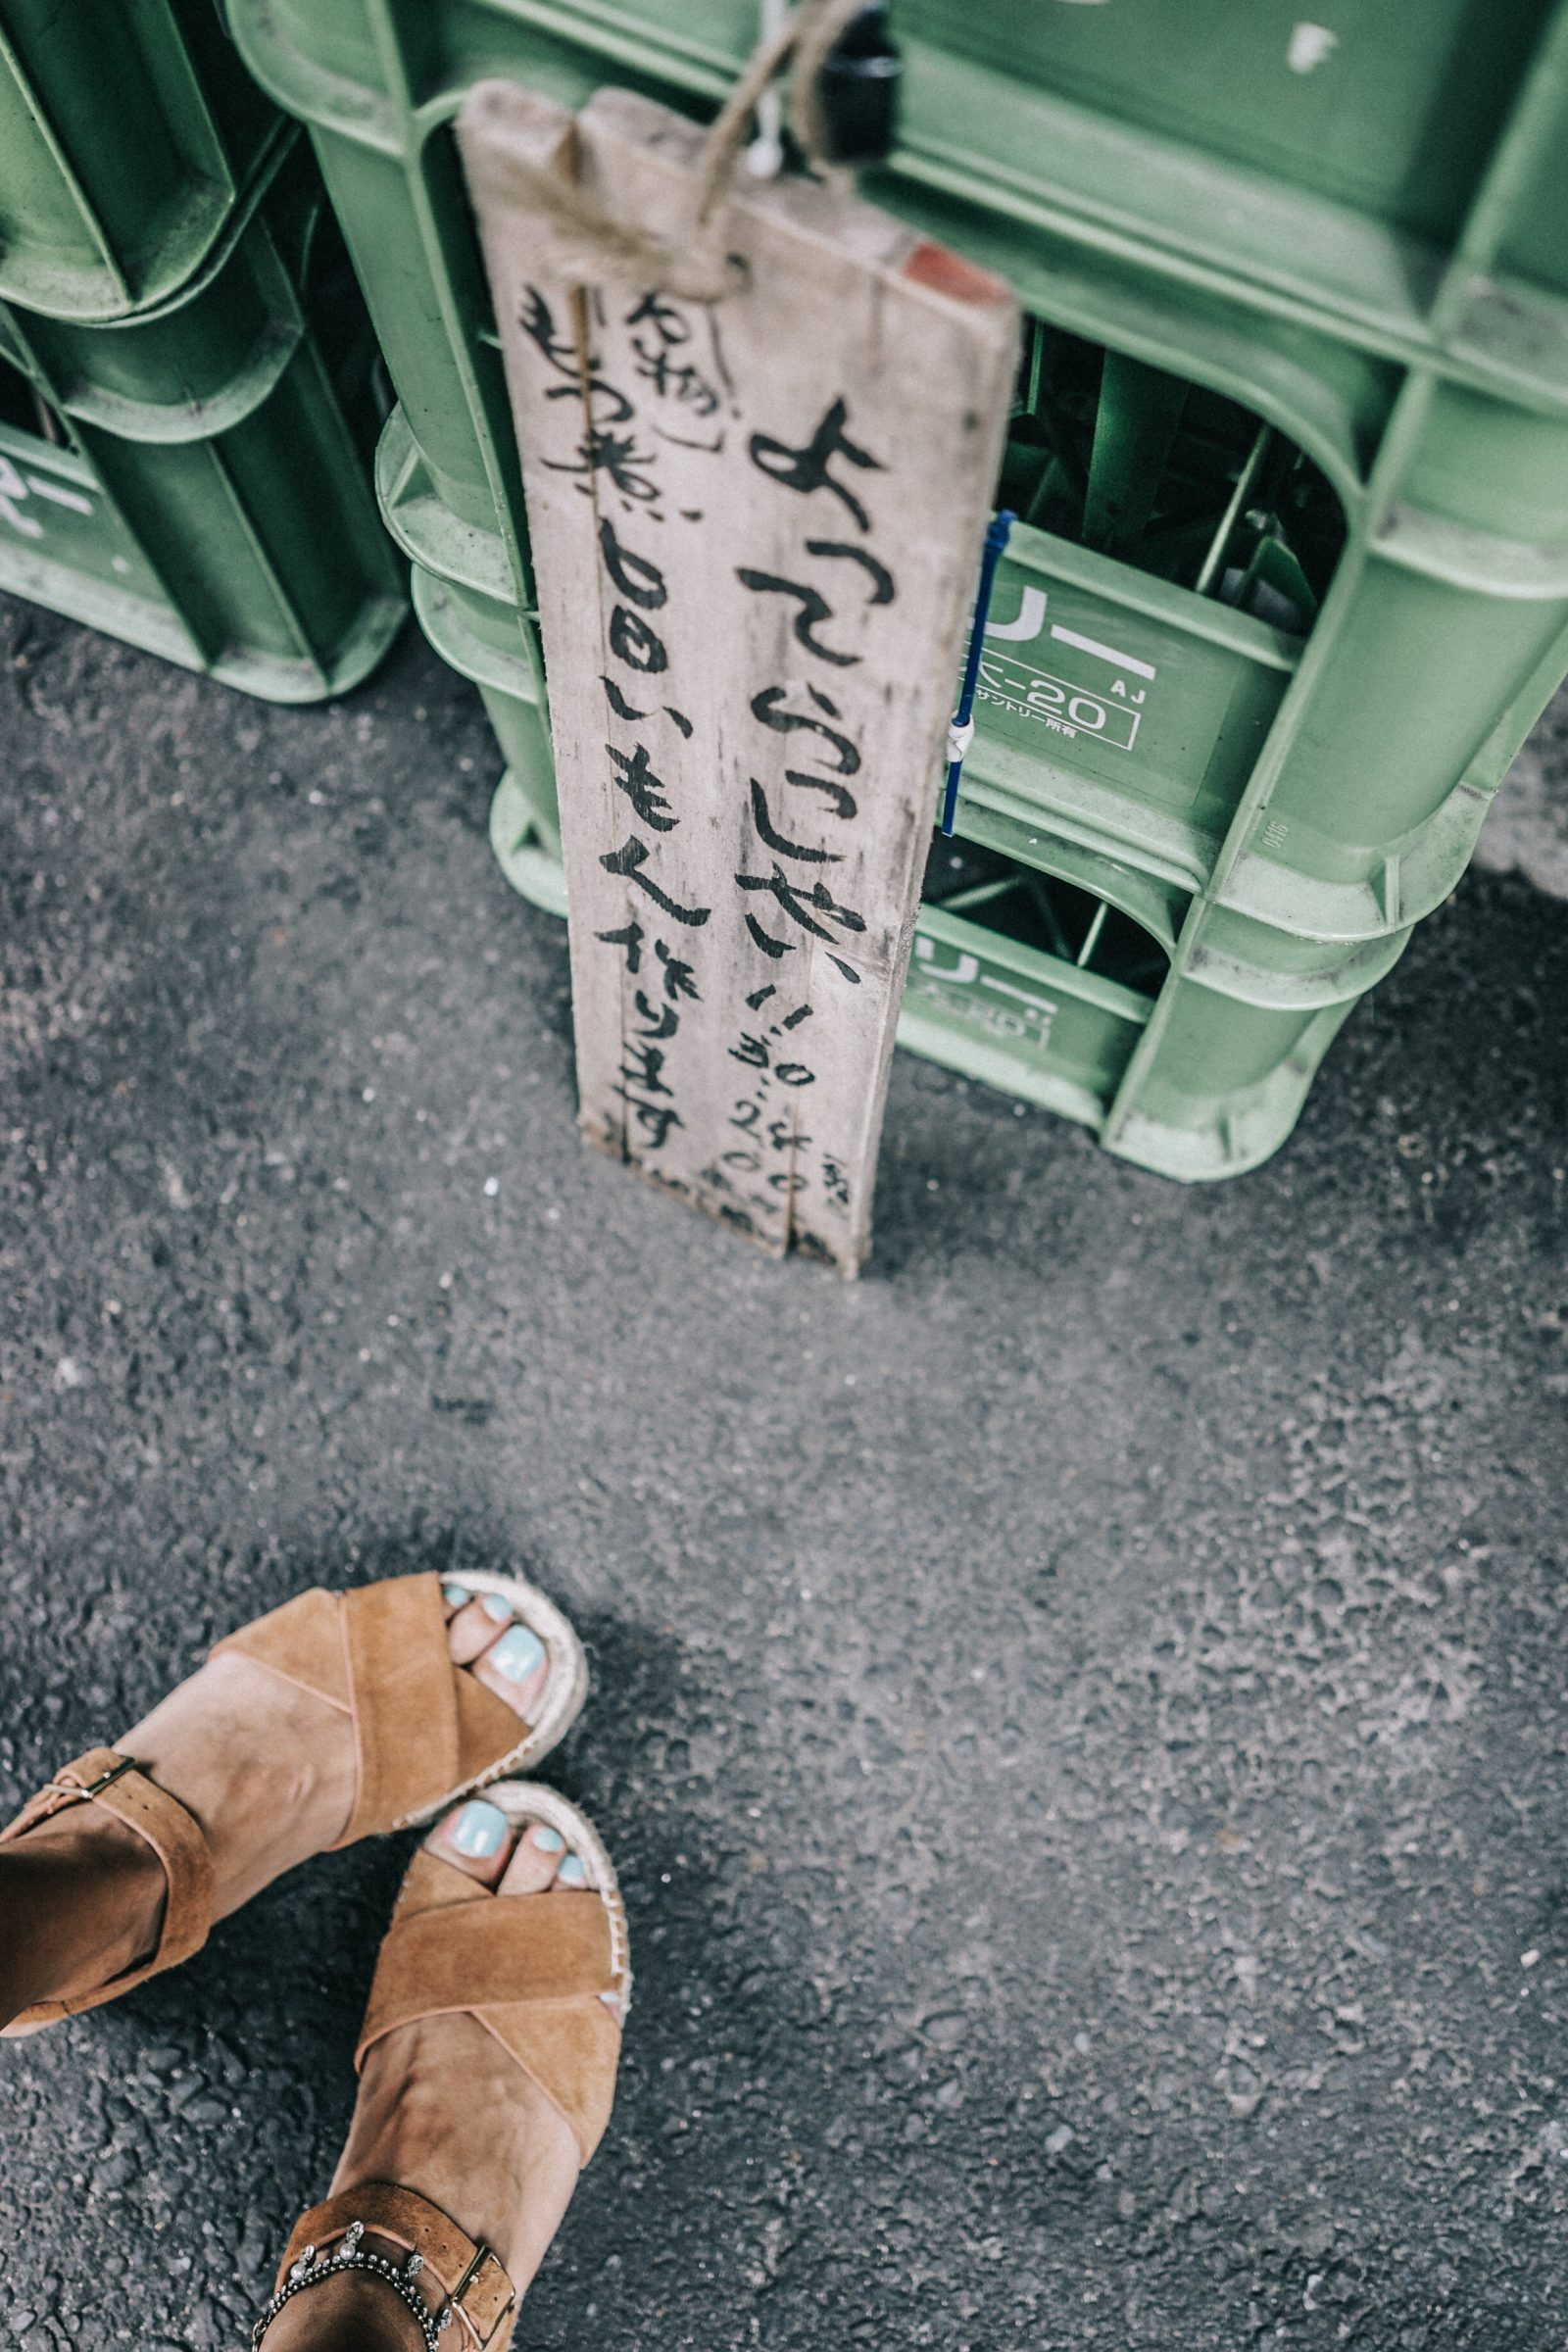 tokyo_travel_guide-outfit-collage_vintage-street_style-lovers_and_friends_jumpsuit-white_outfit-espadrilles-backpack-levis_denim_jacket-akihabara-95